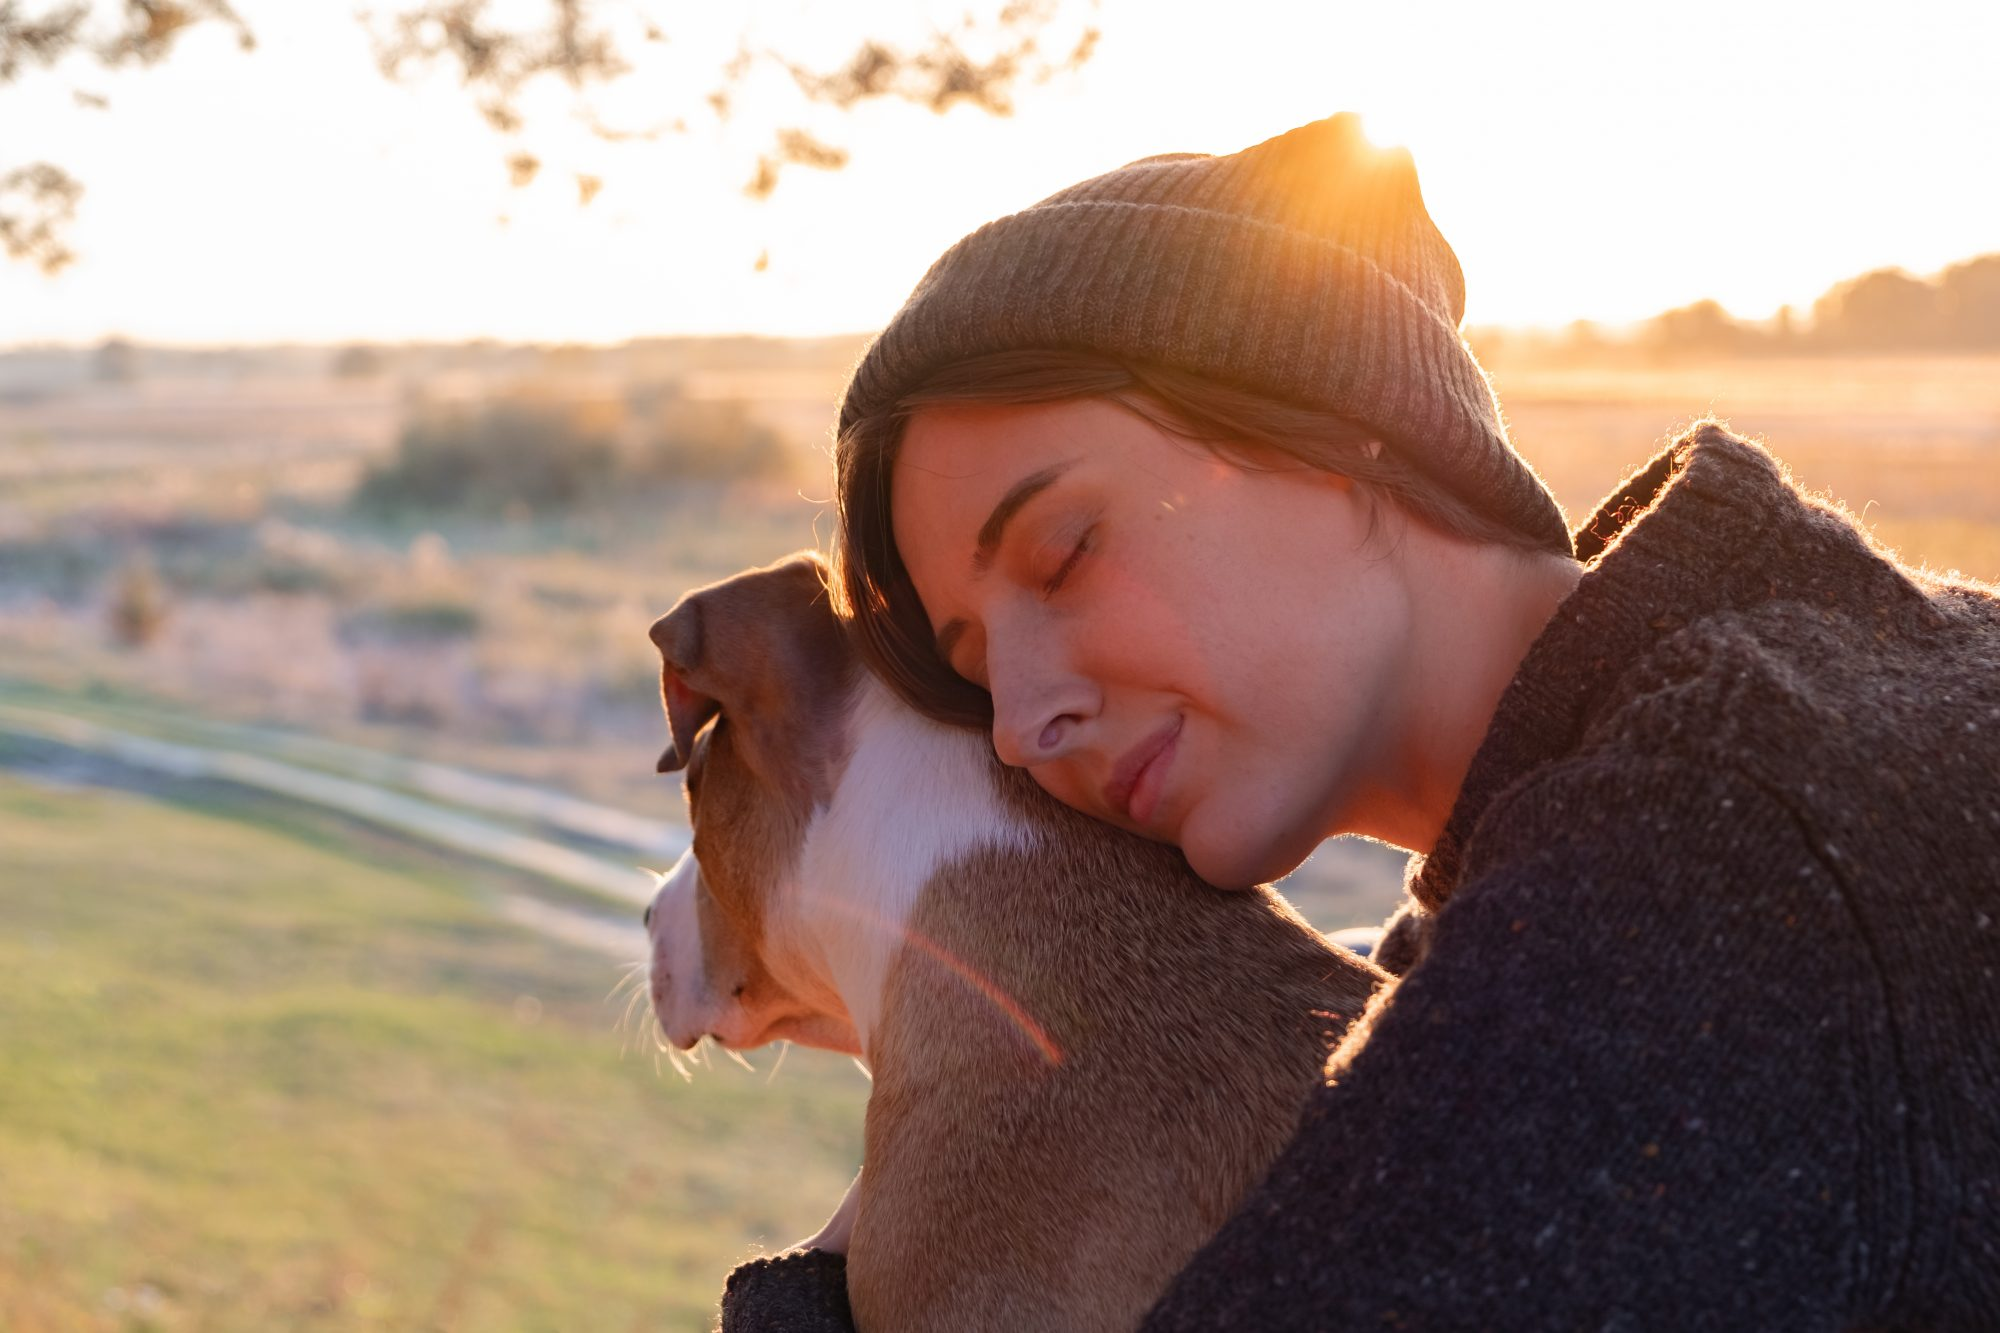 Hugging a dog in beautiful nature at sunset